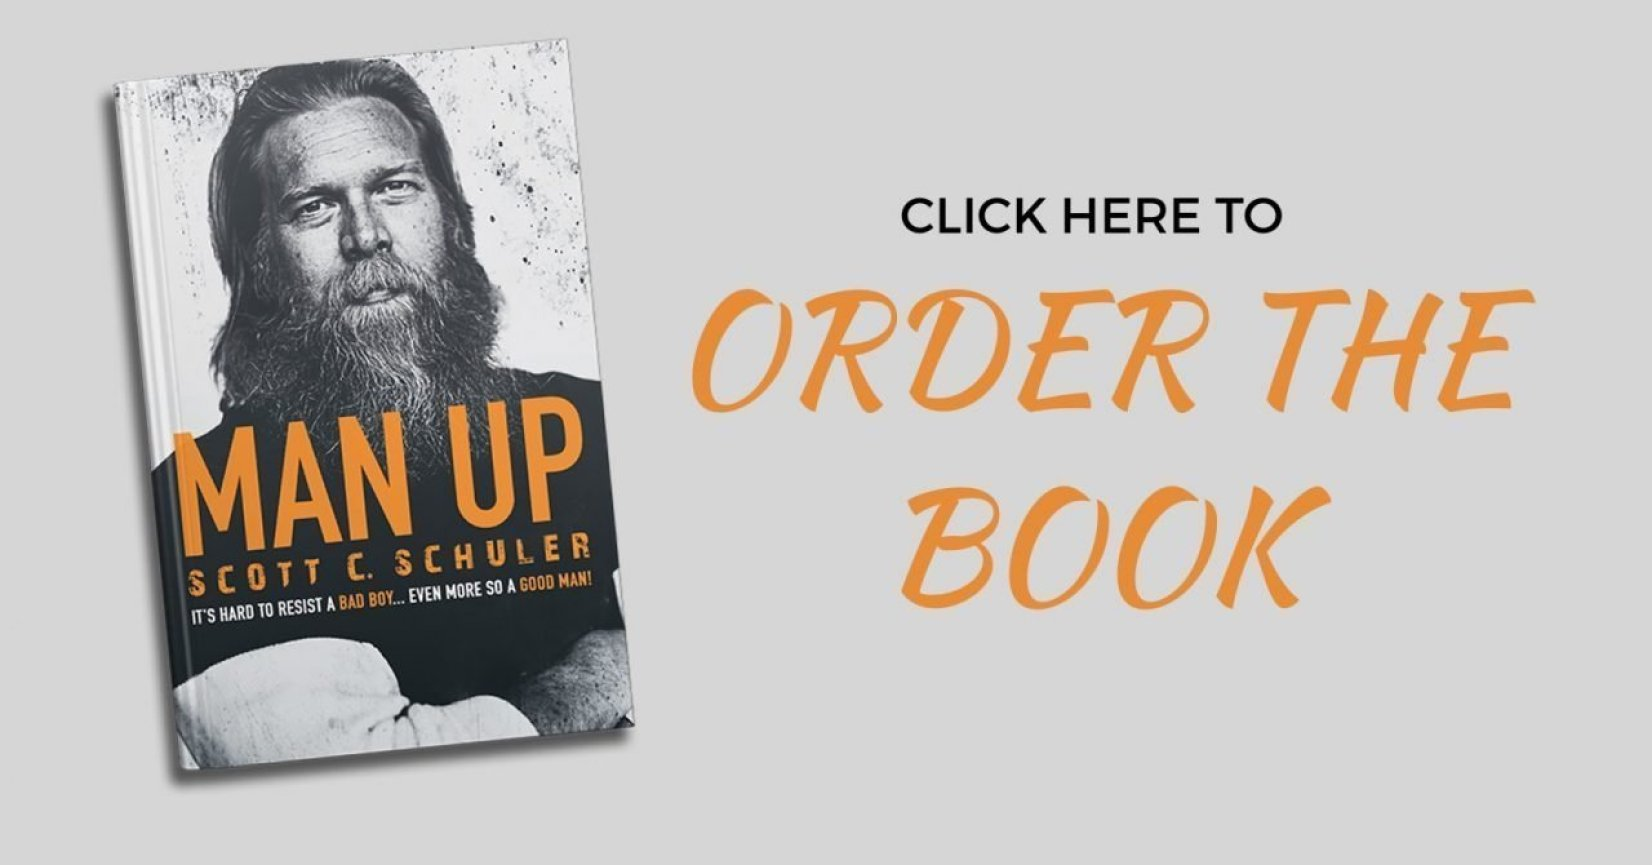 Man Up: It's Hard to Resist a Bad Boy...Even More So a Good Man! by Scott Schuler Order | Tom Nikkola